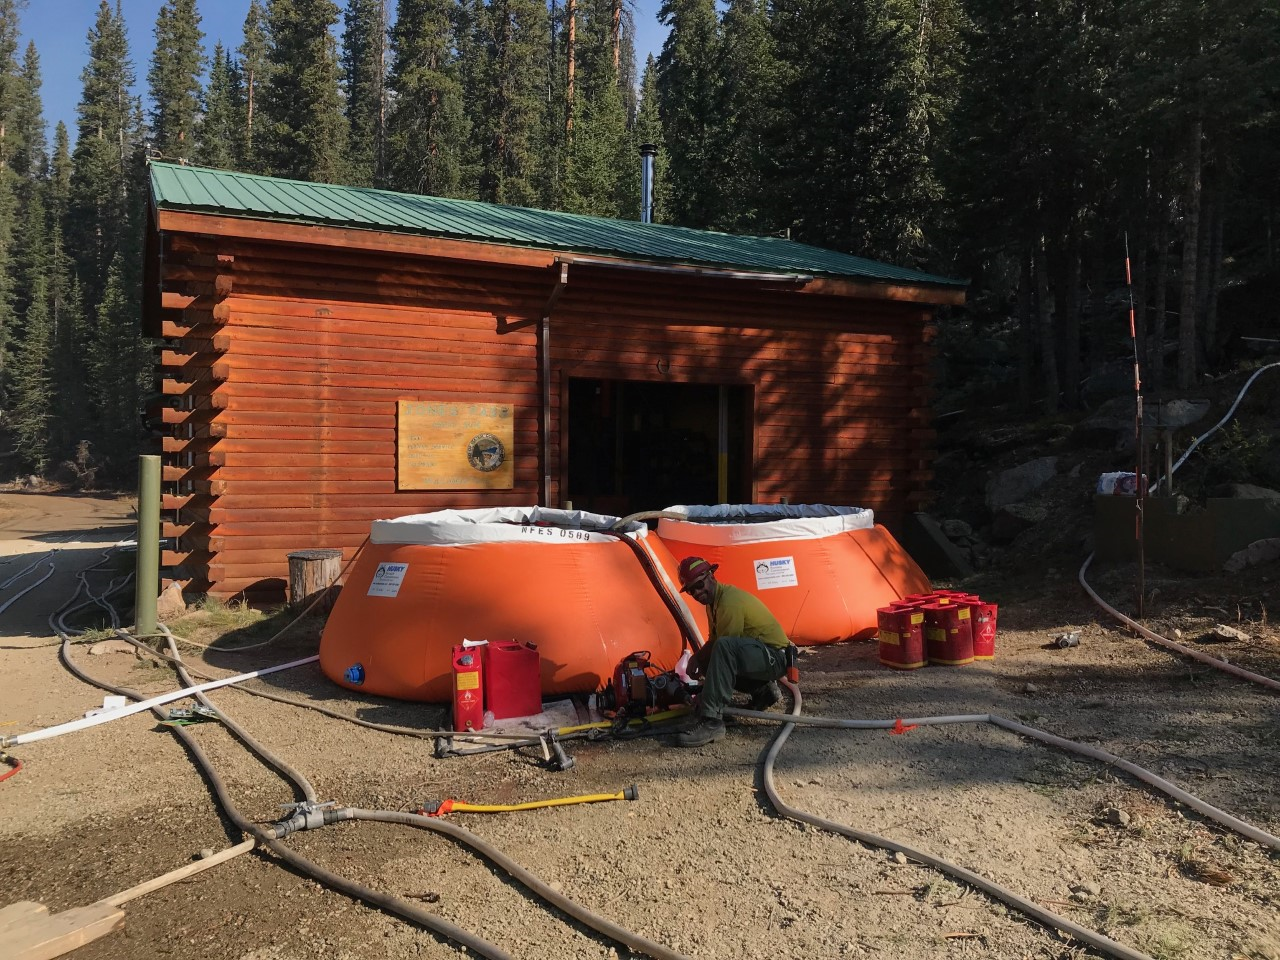 A U.S. Forest Service firefighter sets up a water storage tank to run sprinklers around a building at Denver Water's Jone Pass facility. Photo credit: U.S. Forest Service.